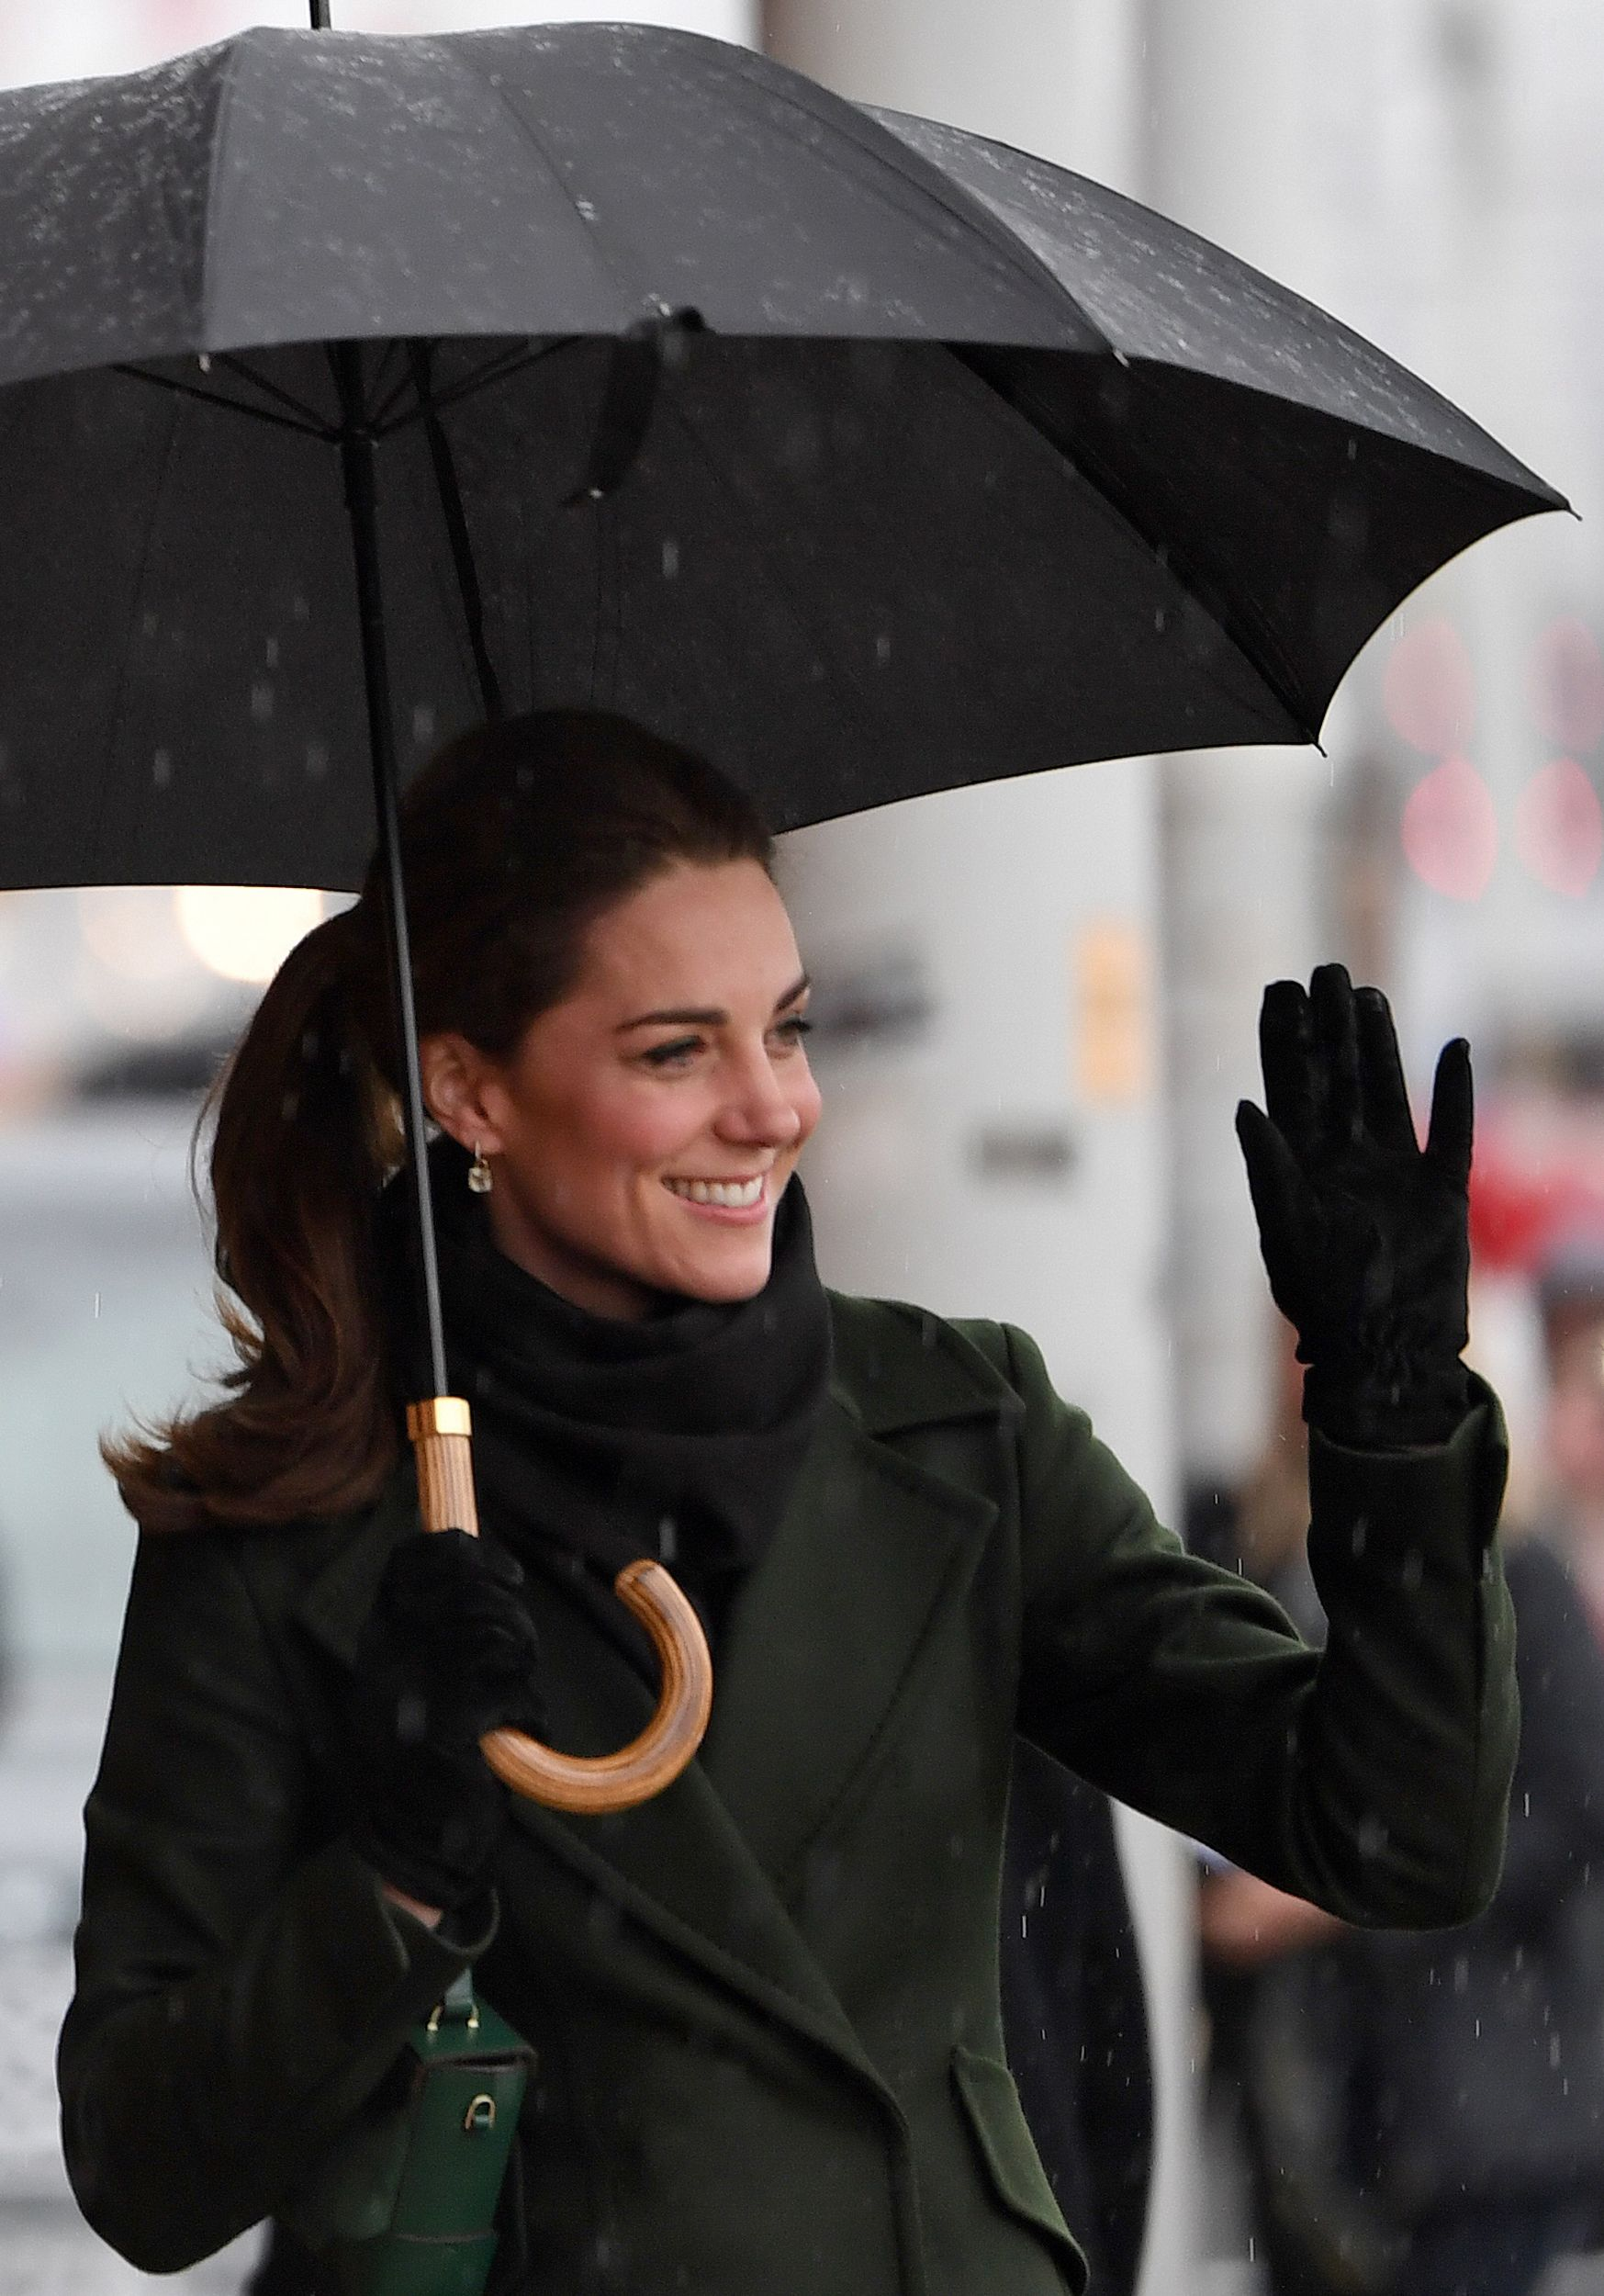 ef3f74fc3733 Kate Middleton Stuns In Olive Green Coat For Blackpool Visit With Prince  William